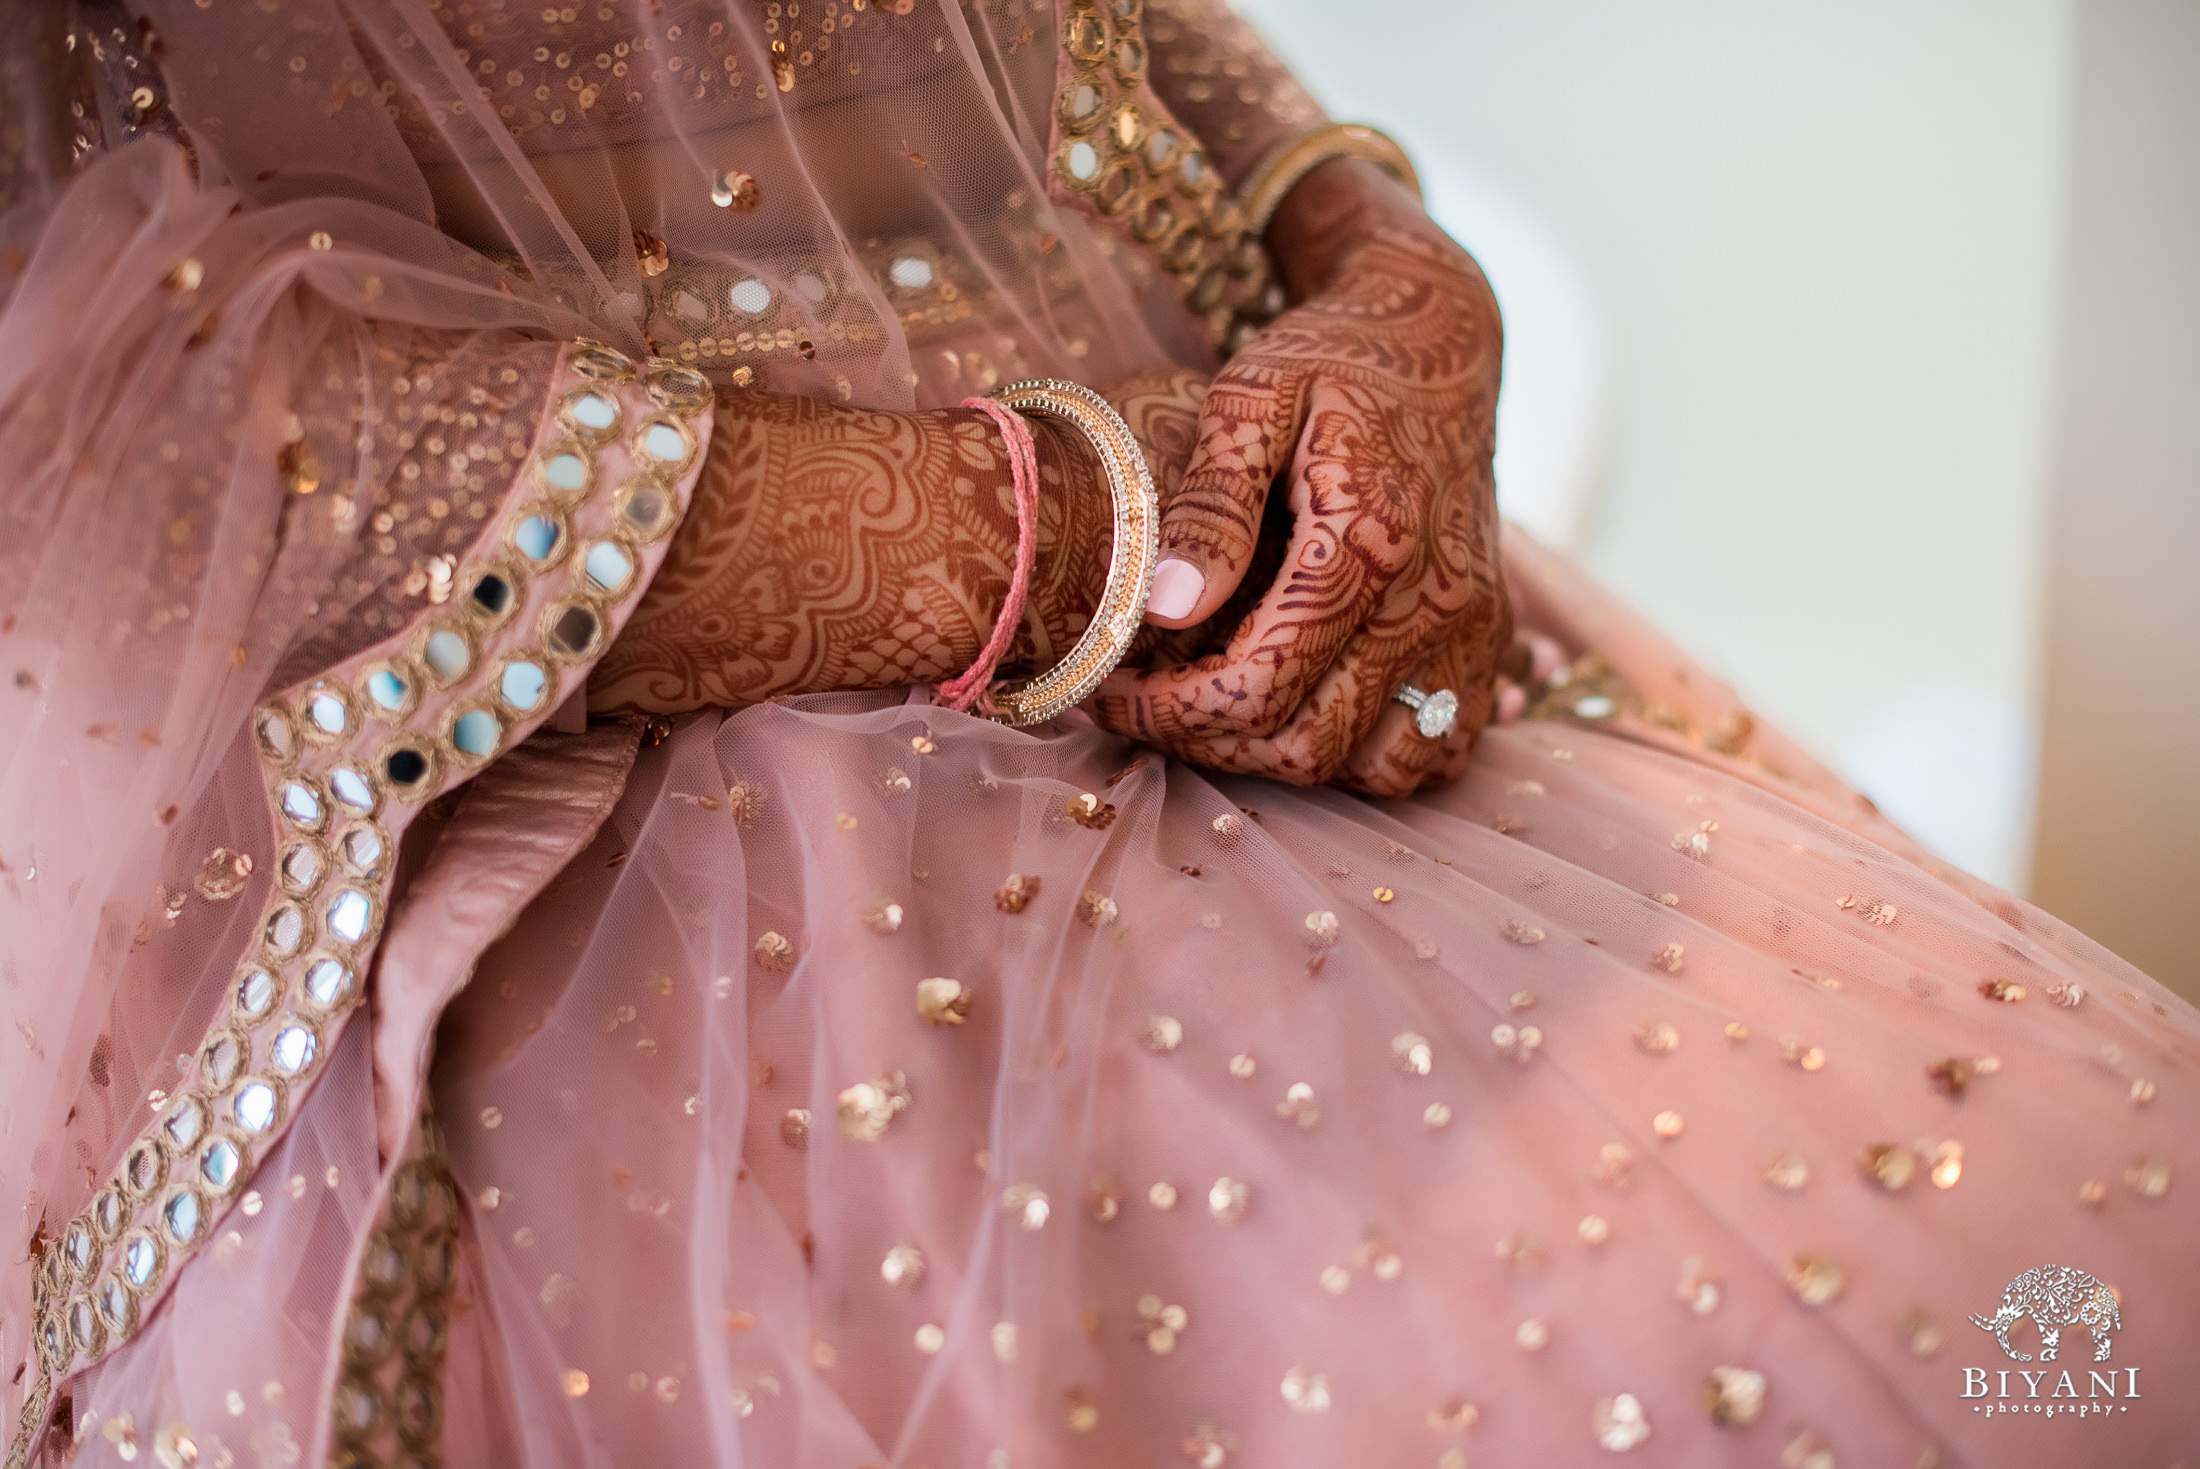 Bride's wedding ring close up in her reception outfit